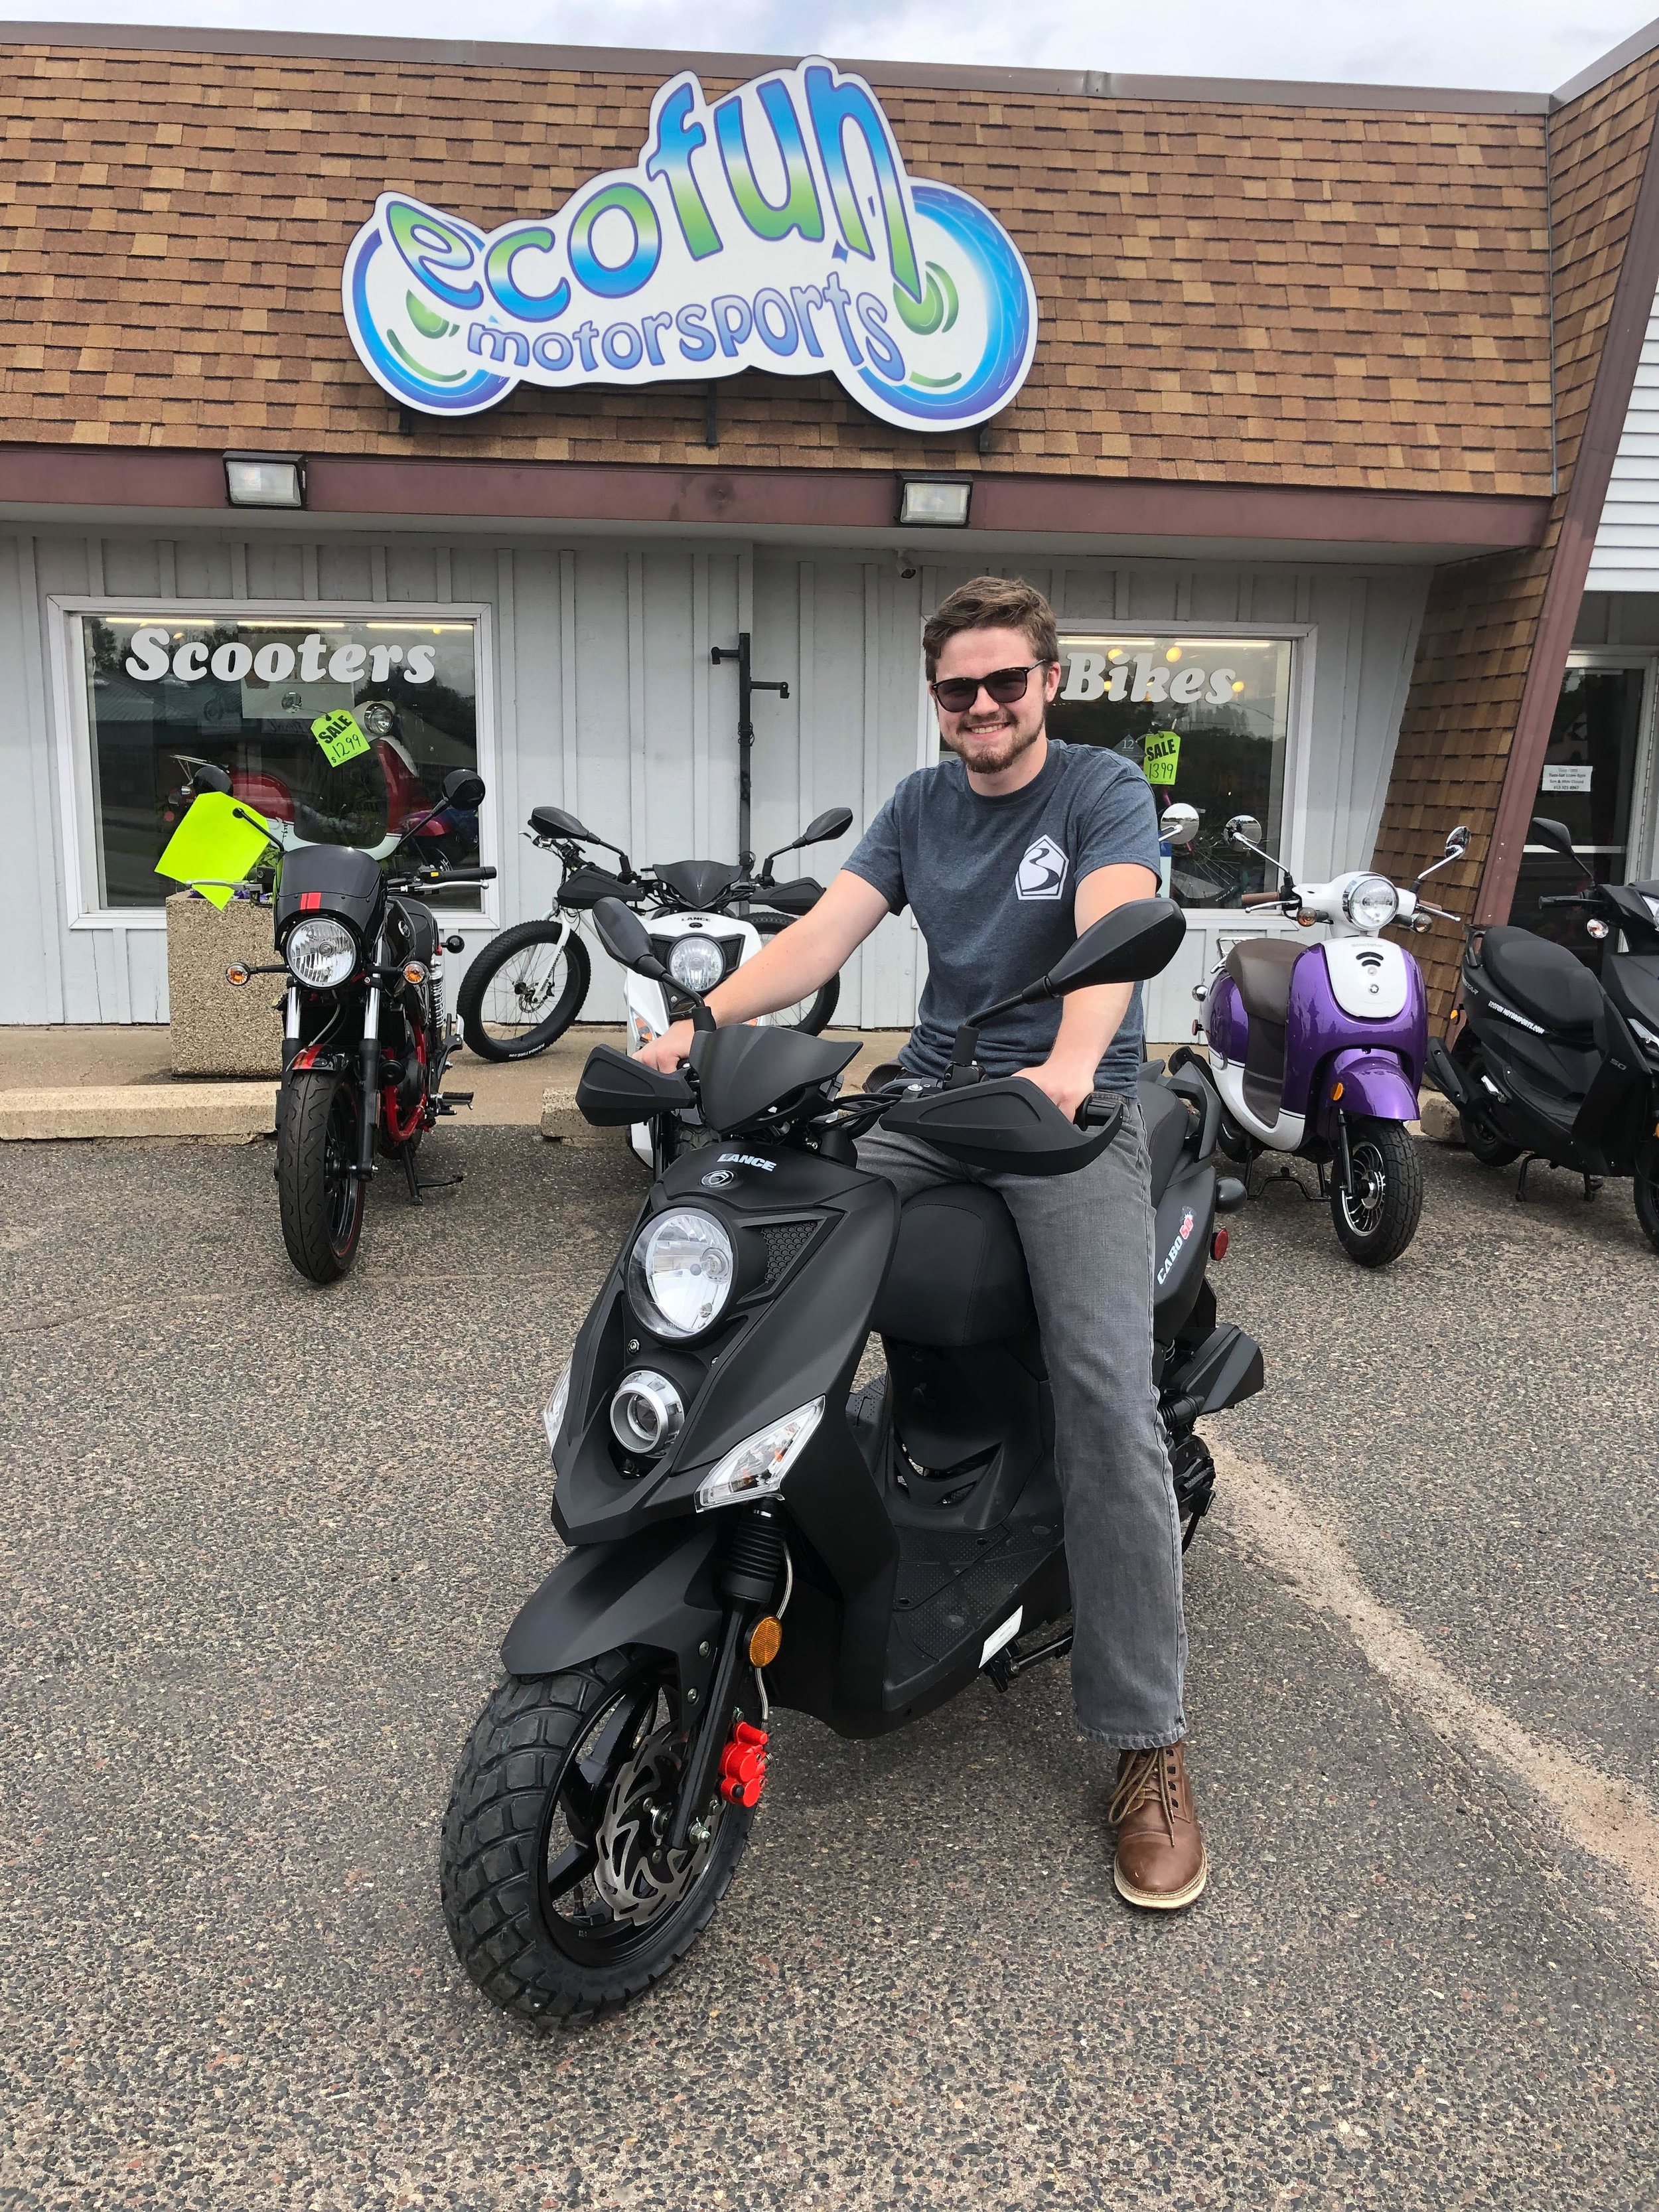 Michael M. - Sales - Michael is a Sales Associate who loves to find our customers the perfect product that fits their needs. His favorite scooter is the Lance Cabo in Stealth Black. During his free time he enjoys movies, podcasting, and traveling.